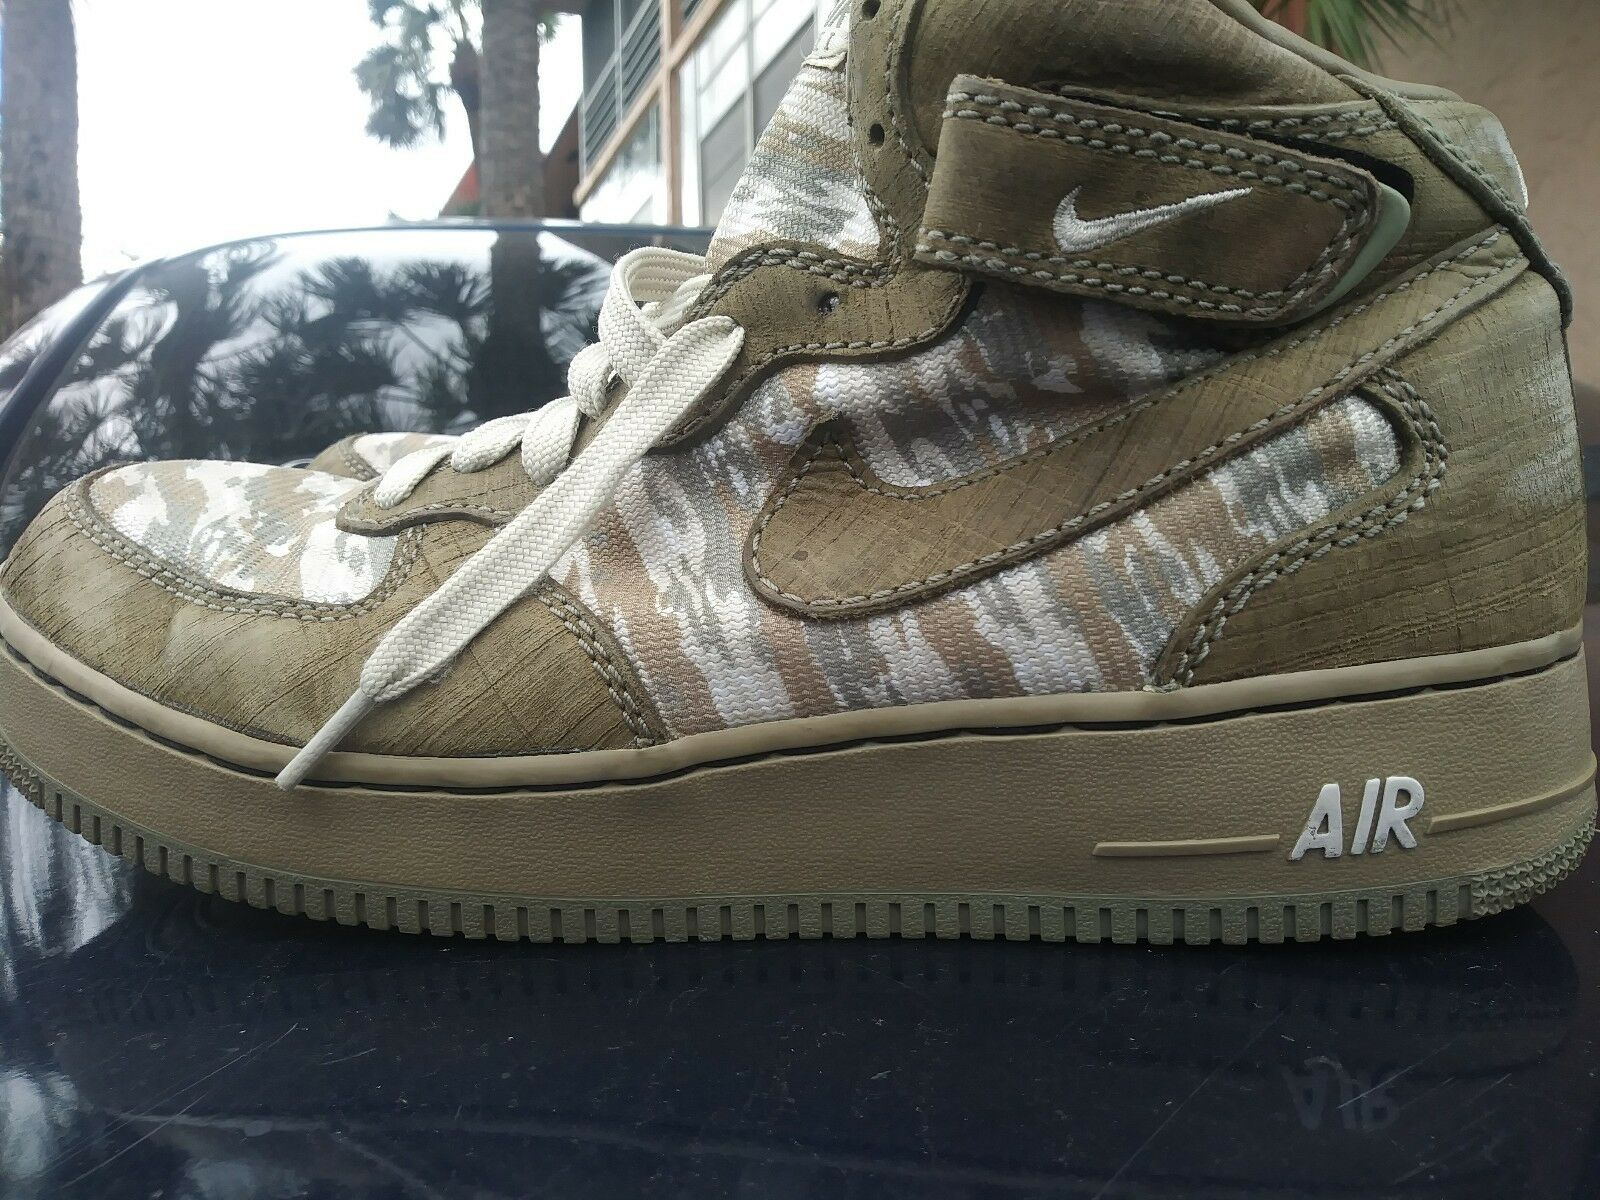 Nike Air Air Air Force 1 I Recon LIMITED EDITION 2004 Army Size 12 mid acabe9